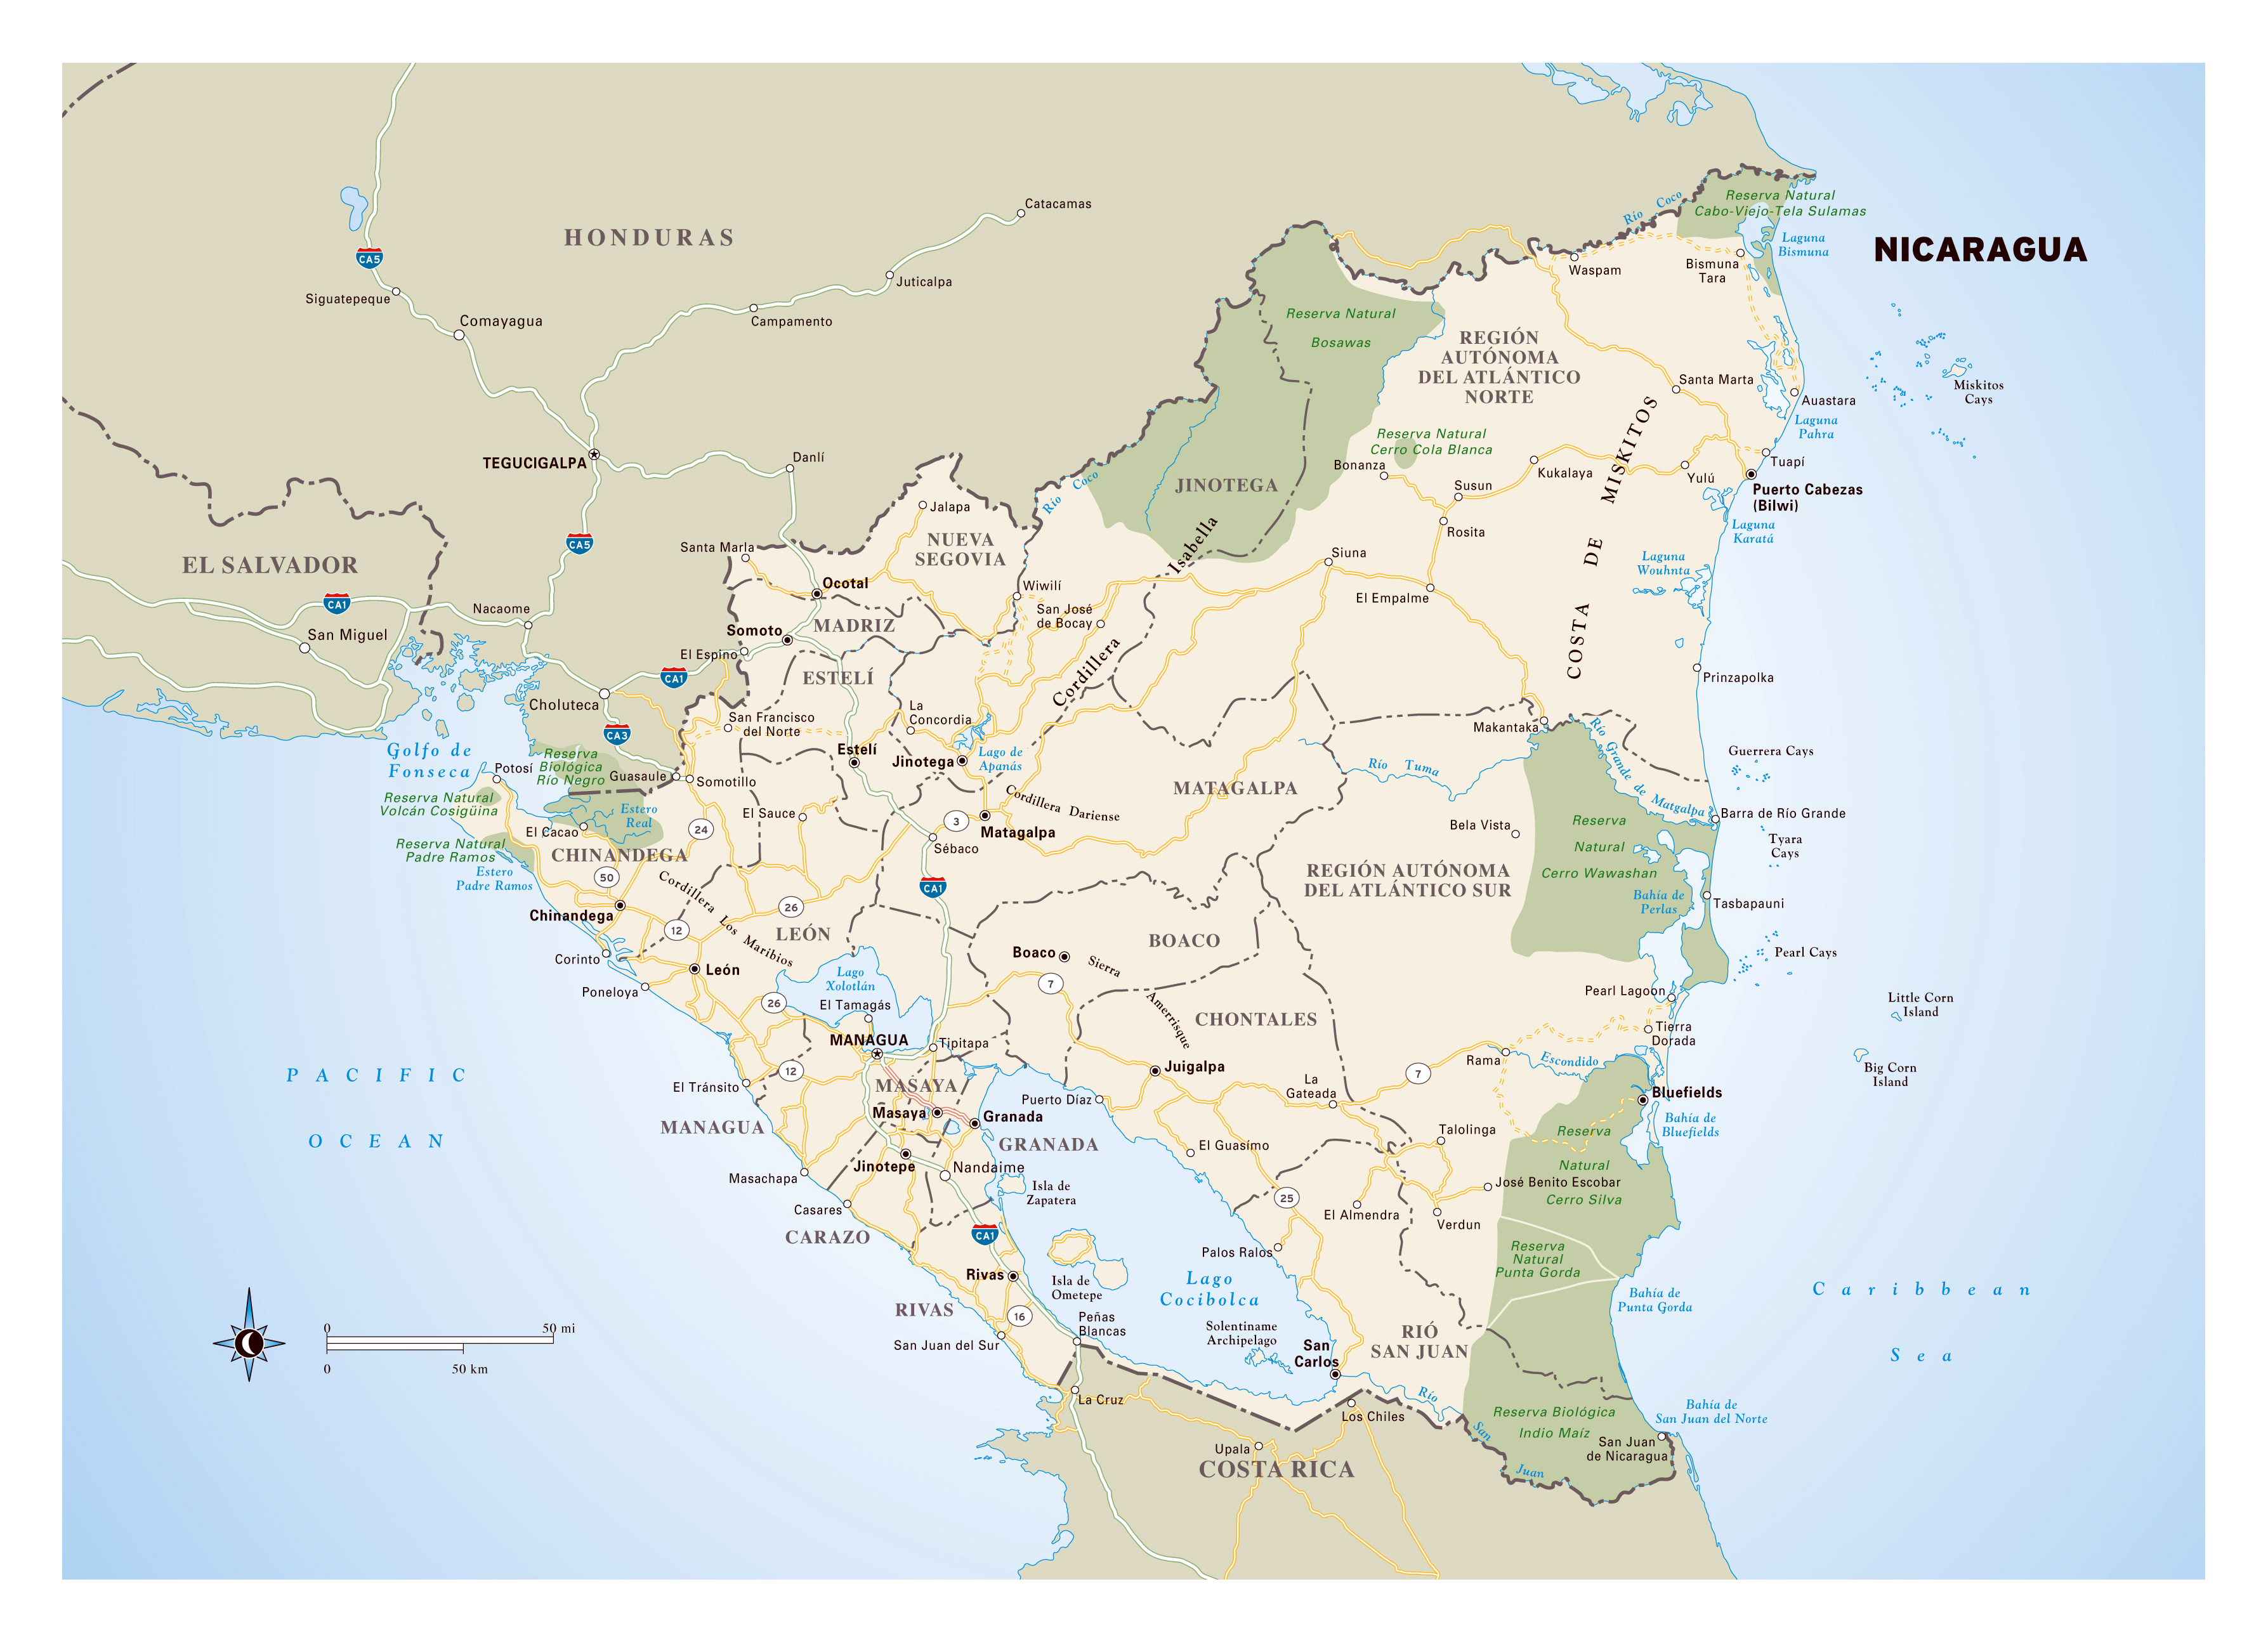 Large Detailed Map Of Nicaragua With Administrative Divisons - Where is nicaragua on the world map